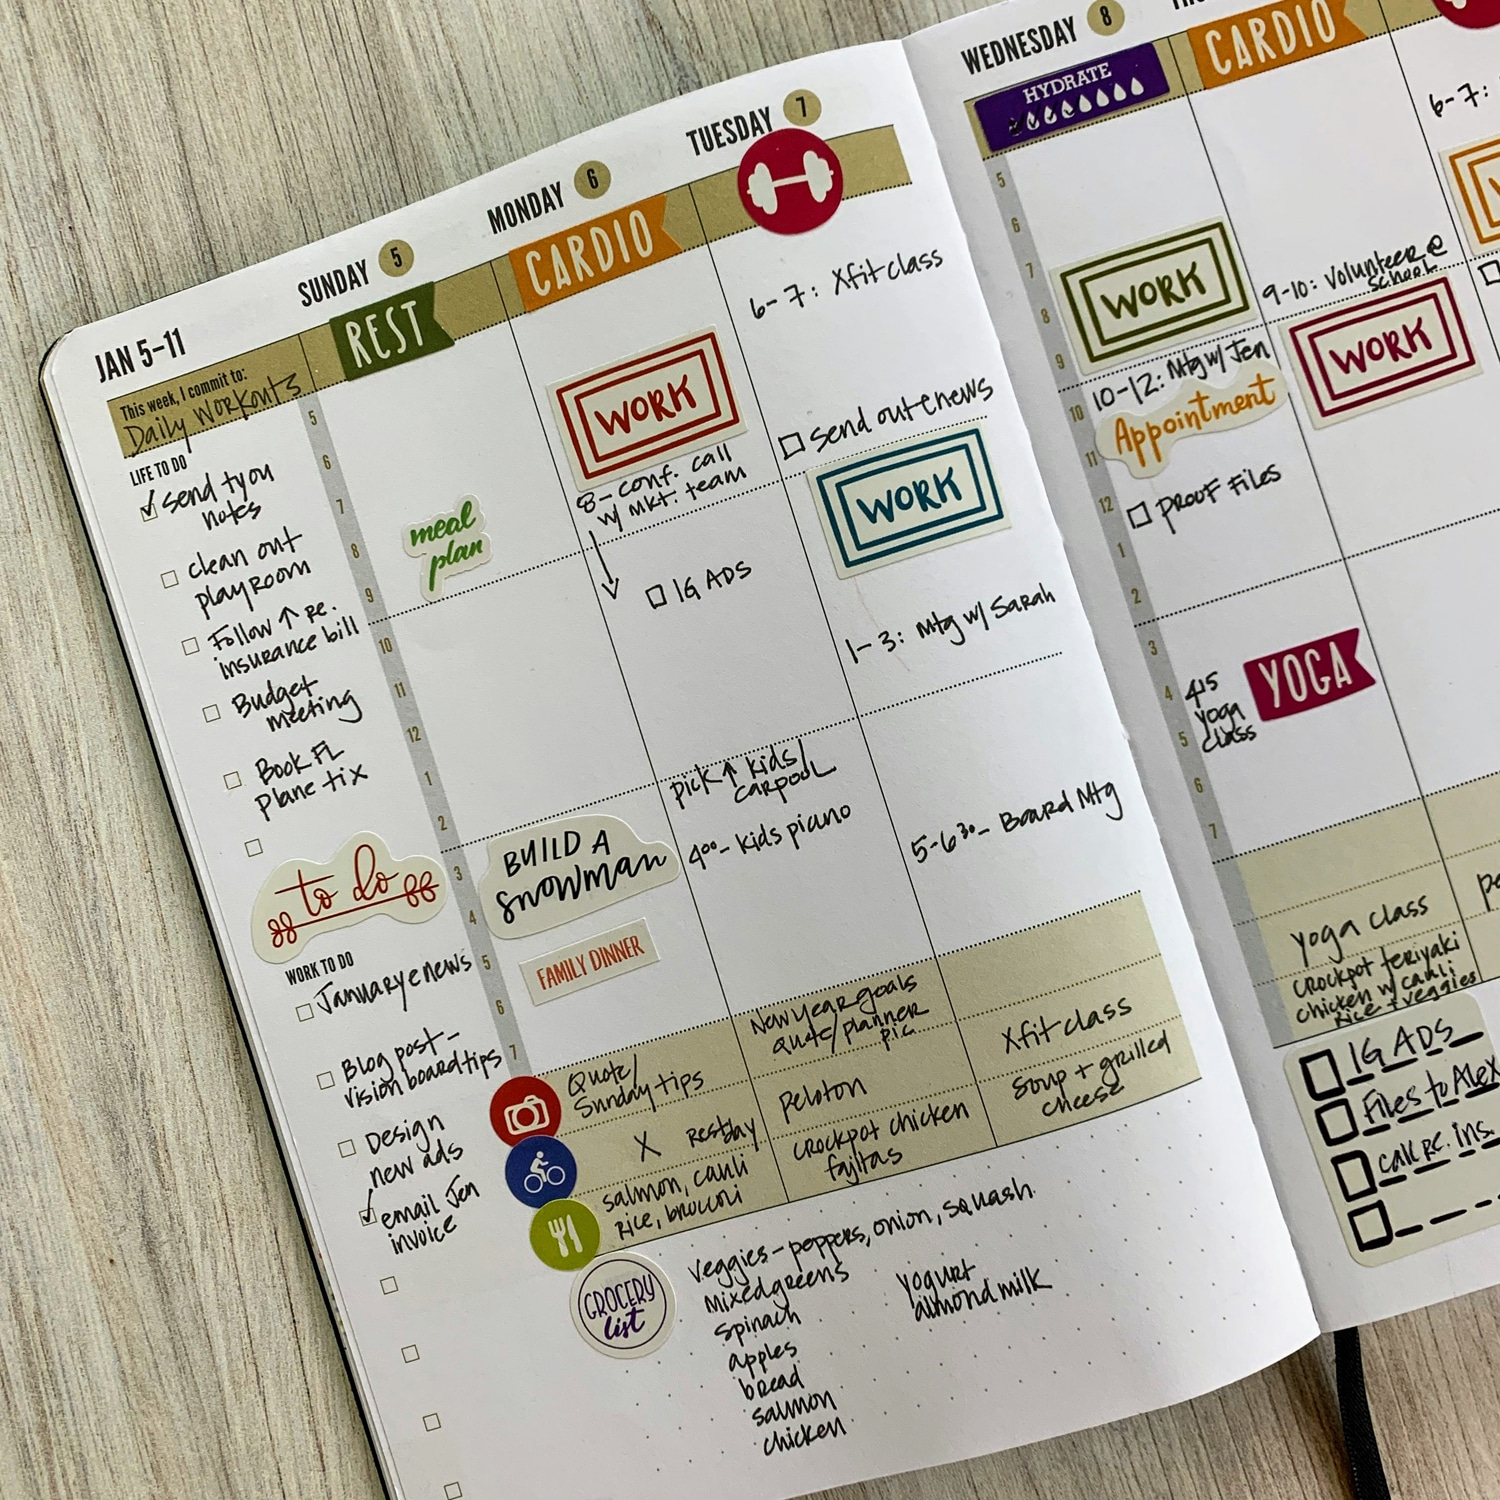 2021 Planner - New 2021 Weekly Day Planners On Sale! Commit30